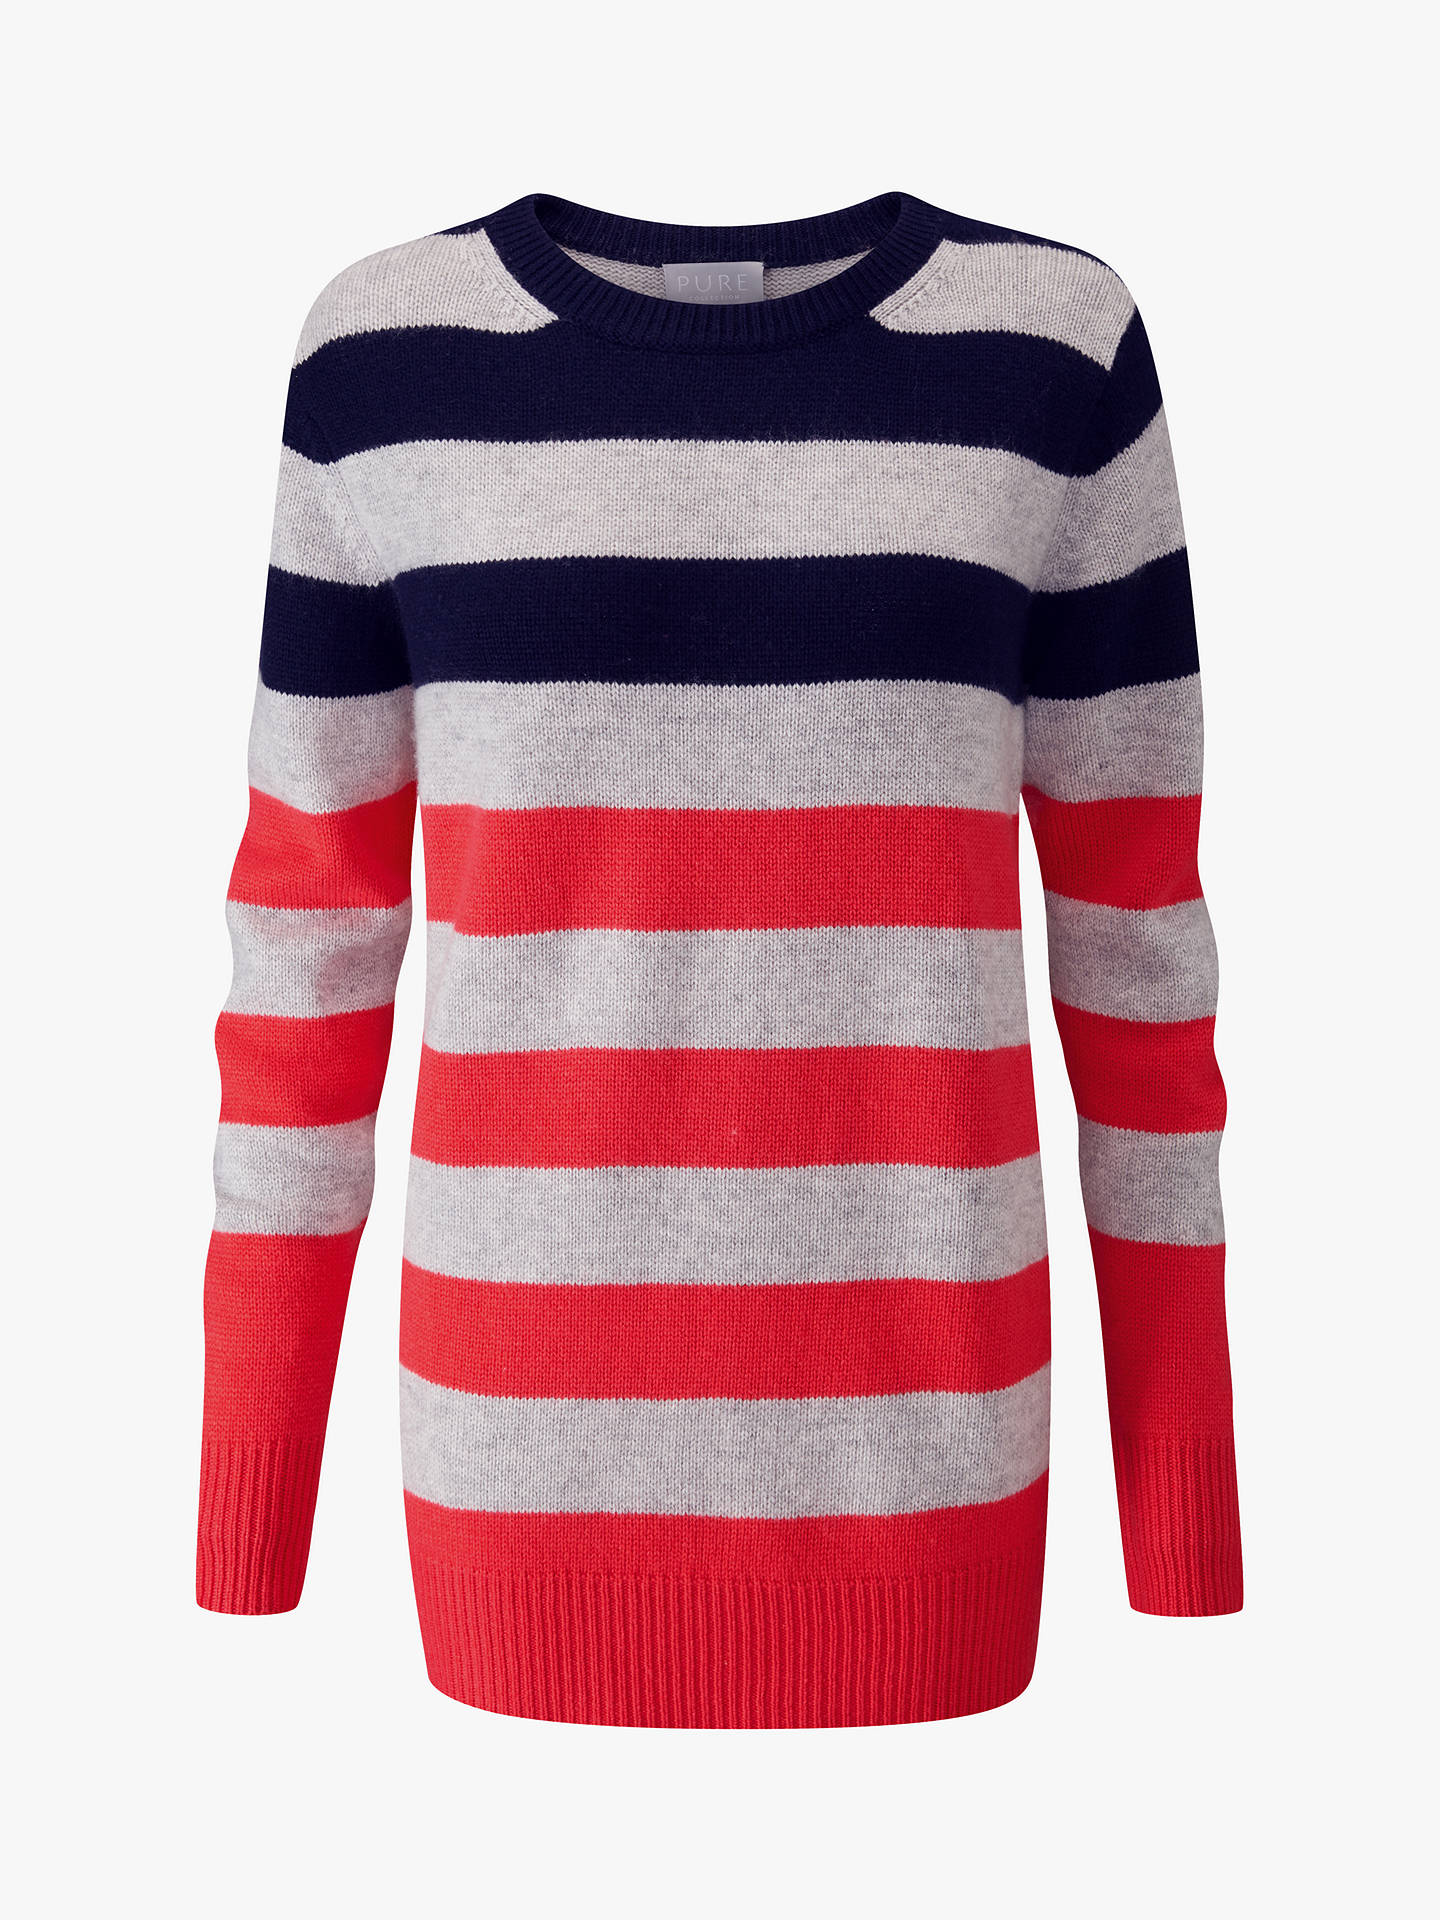 Buy Pure Collection Boyfriend Jumper, Navy/Coral, 8 Online at johnlewis.com